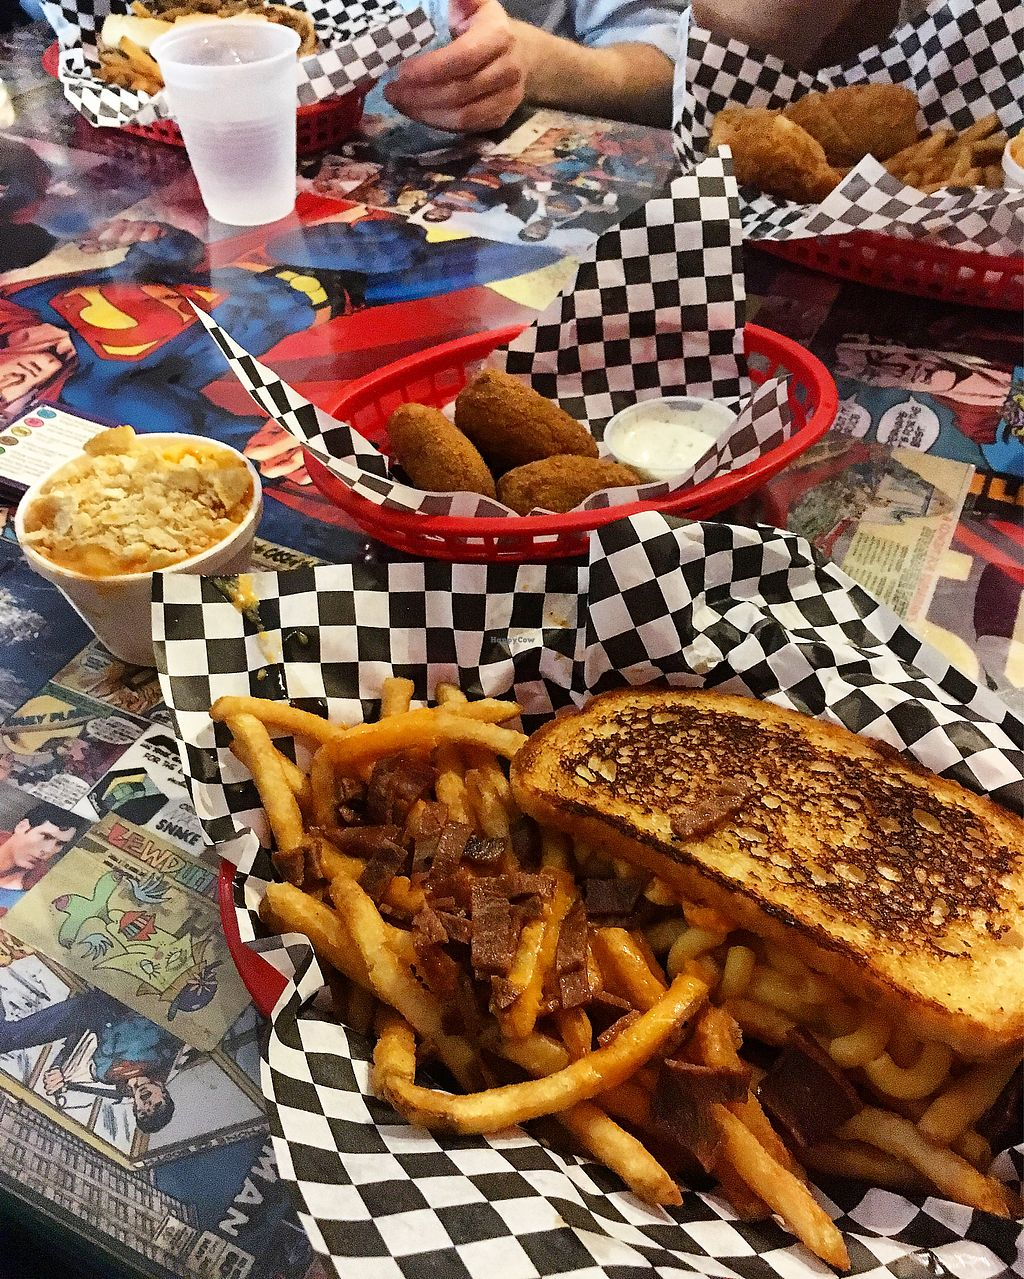 """Photo of Doomie's Home Cookin'  by <a href=""""/members/profile/totesmckee"""">totesmckee</a> <br/>Patty melt and jalapeño poppers  <br/> March 18, 2018  - <a href='/contact/abuse/image/24562/372219'>Report</a>"""